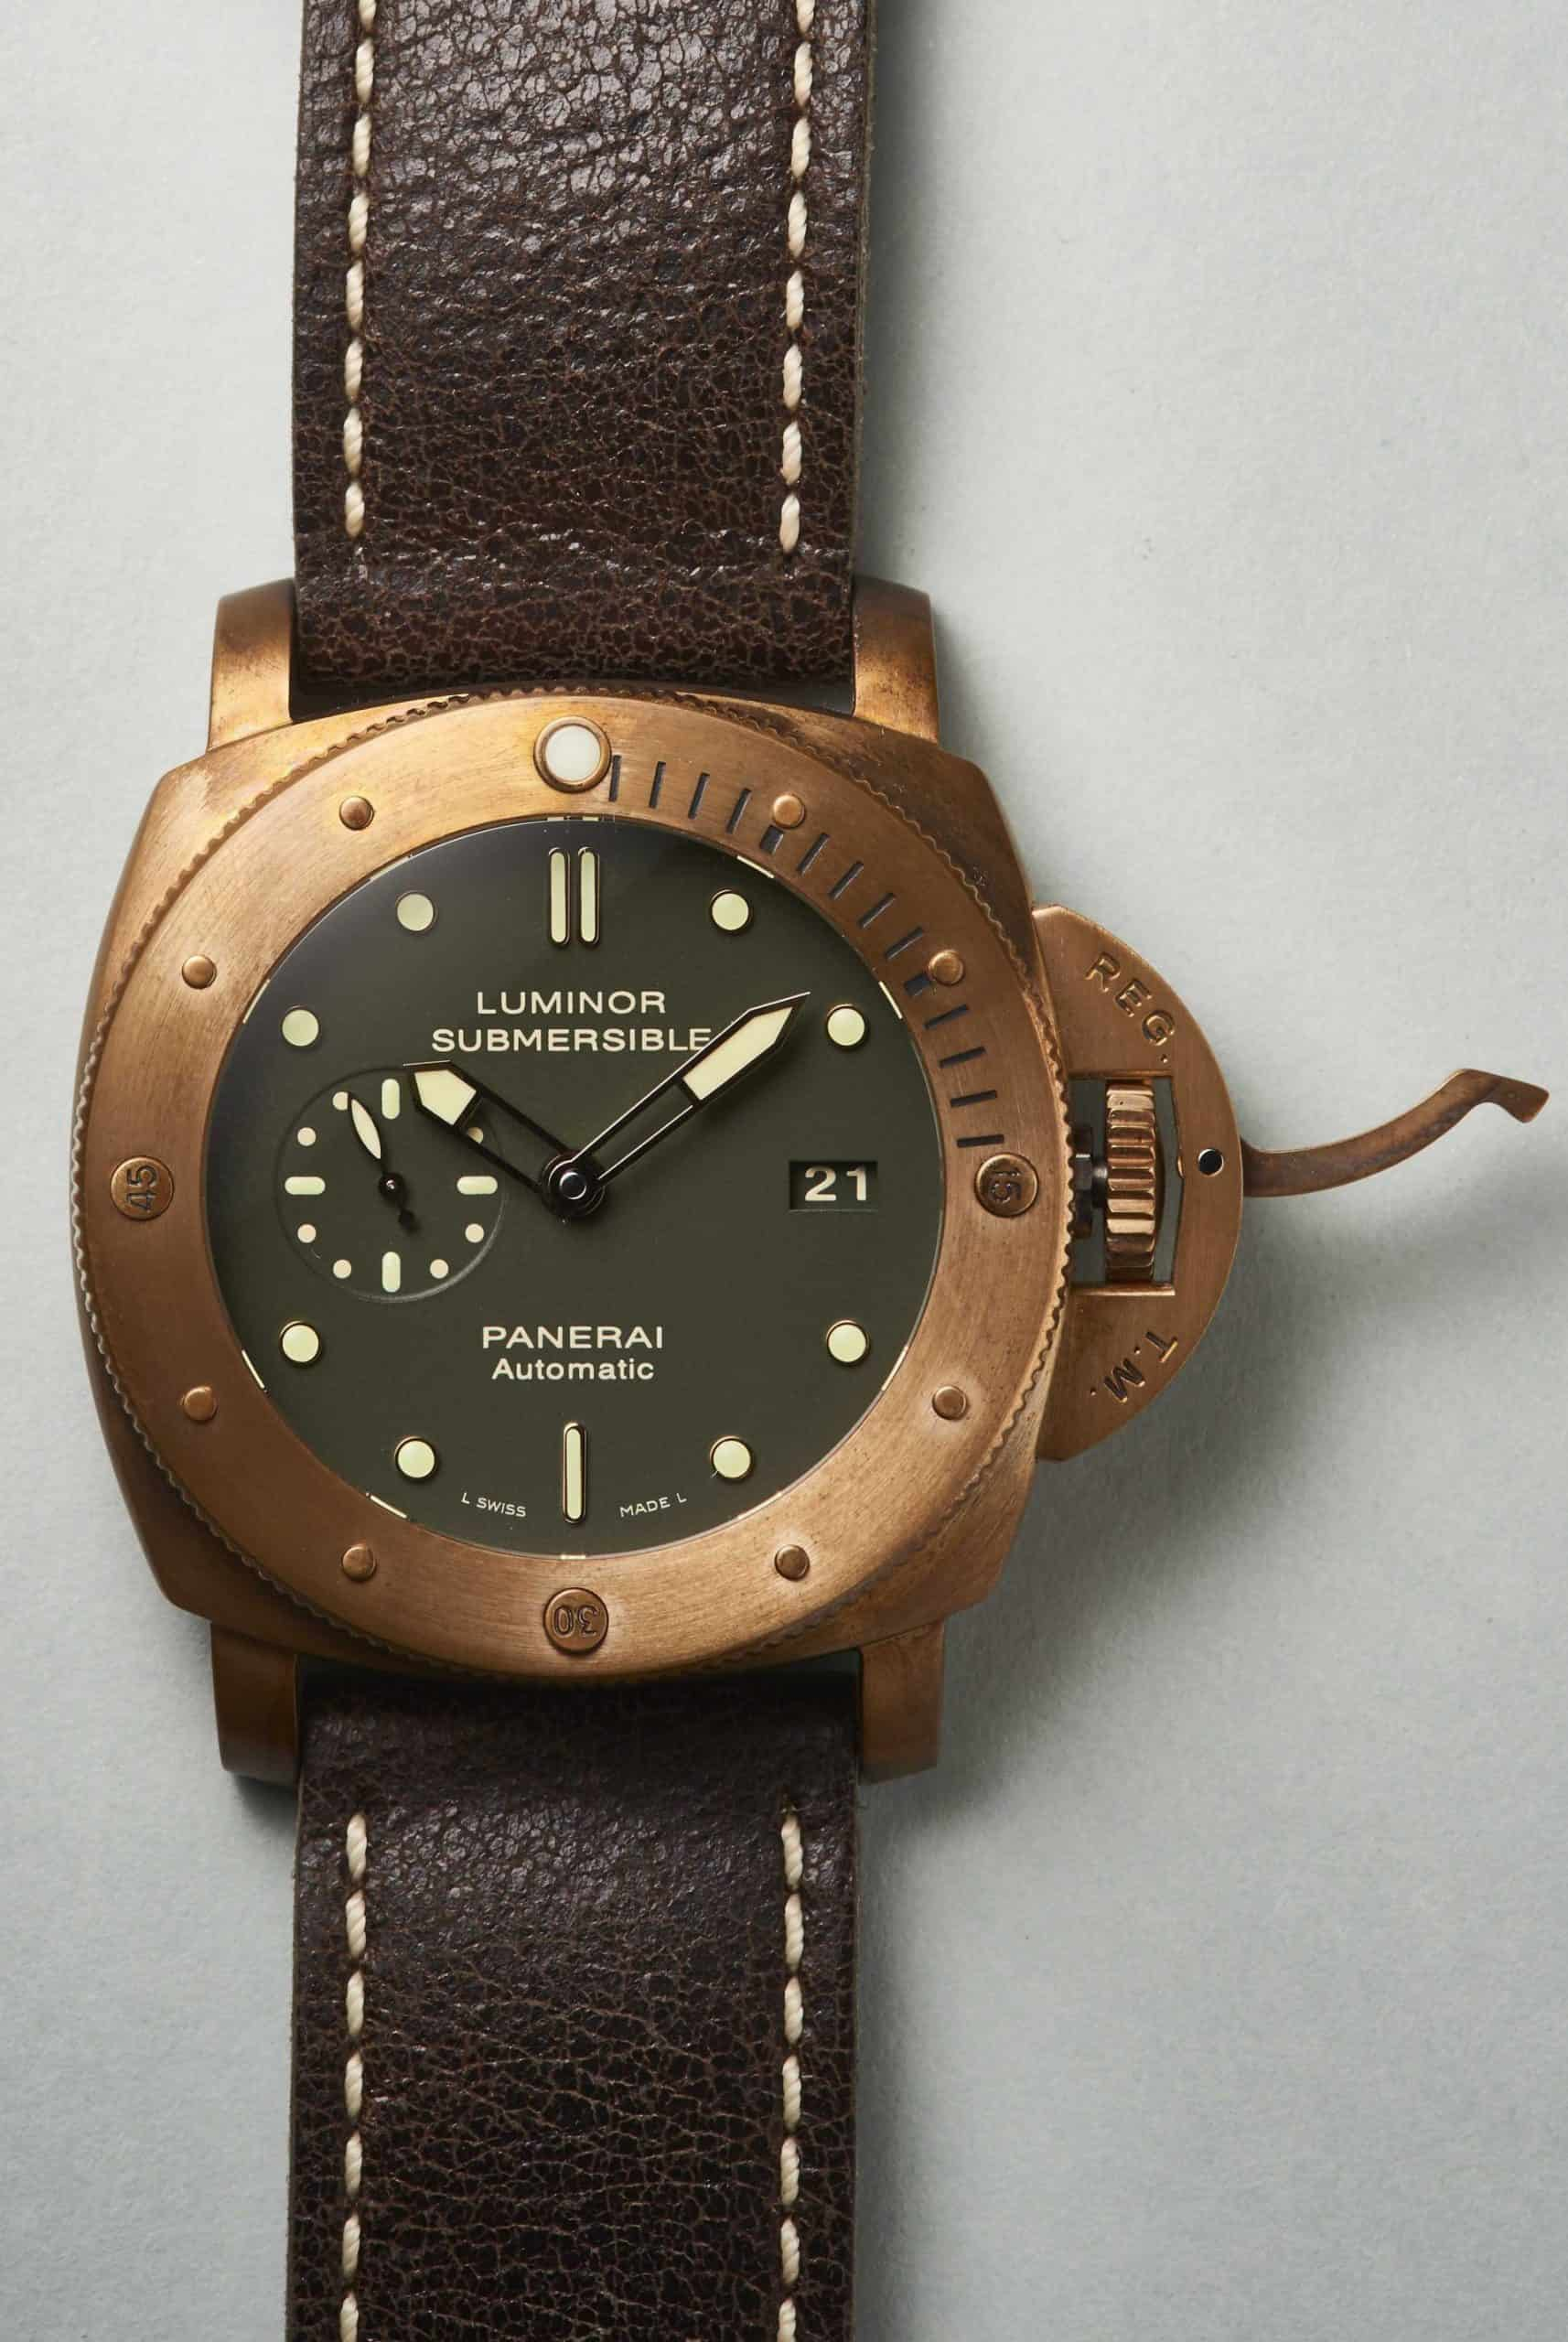 Panerei Luminor Submersible Bronzo PAM00382 Krone geöffnet scaled